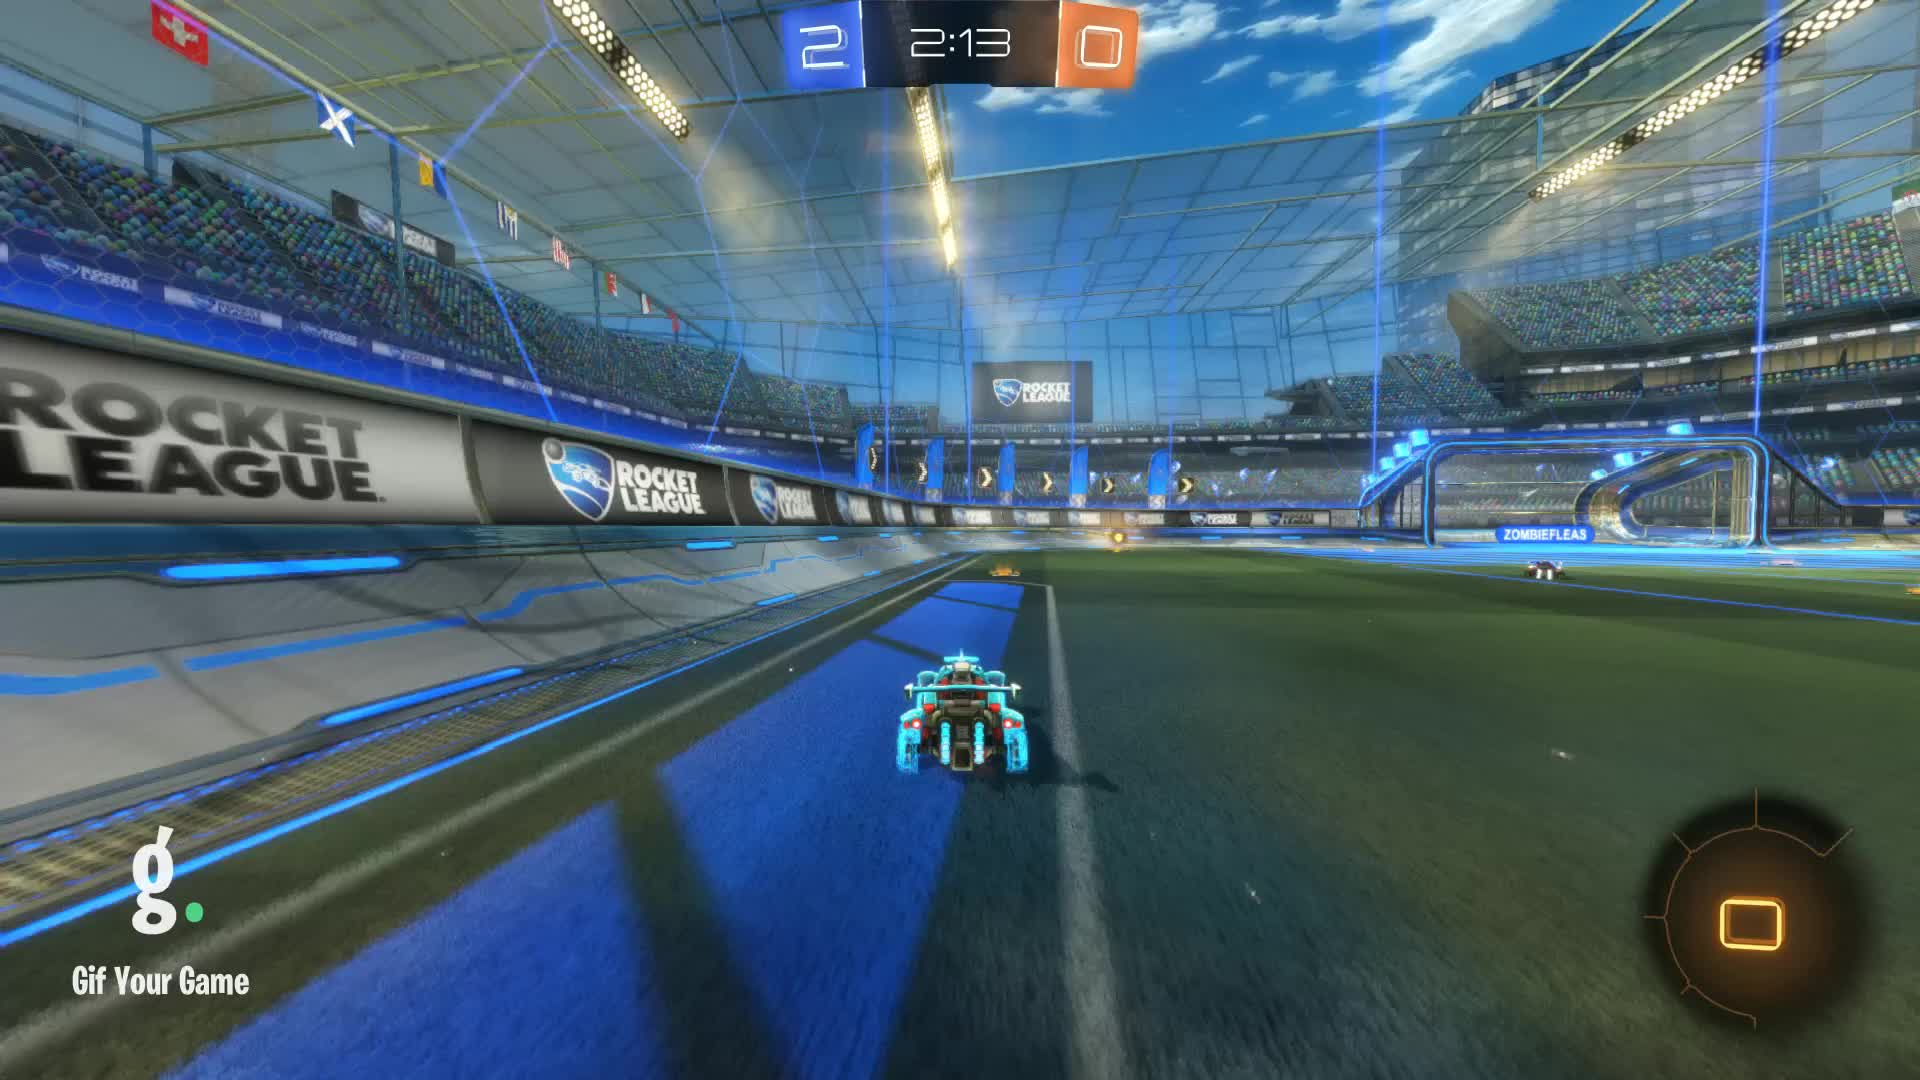 Brole, Gif Your Game, GifYourGame, Goal, Rocket League, RocketLeague, Goal 3: Brole GIFs